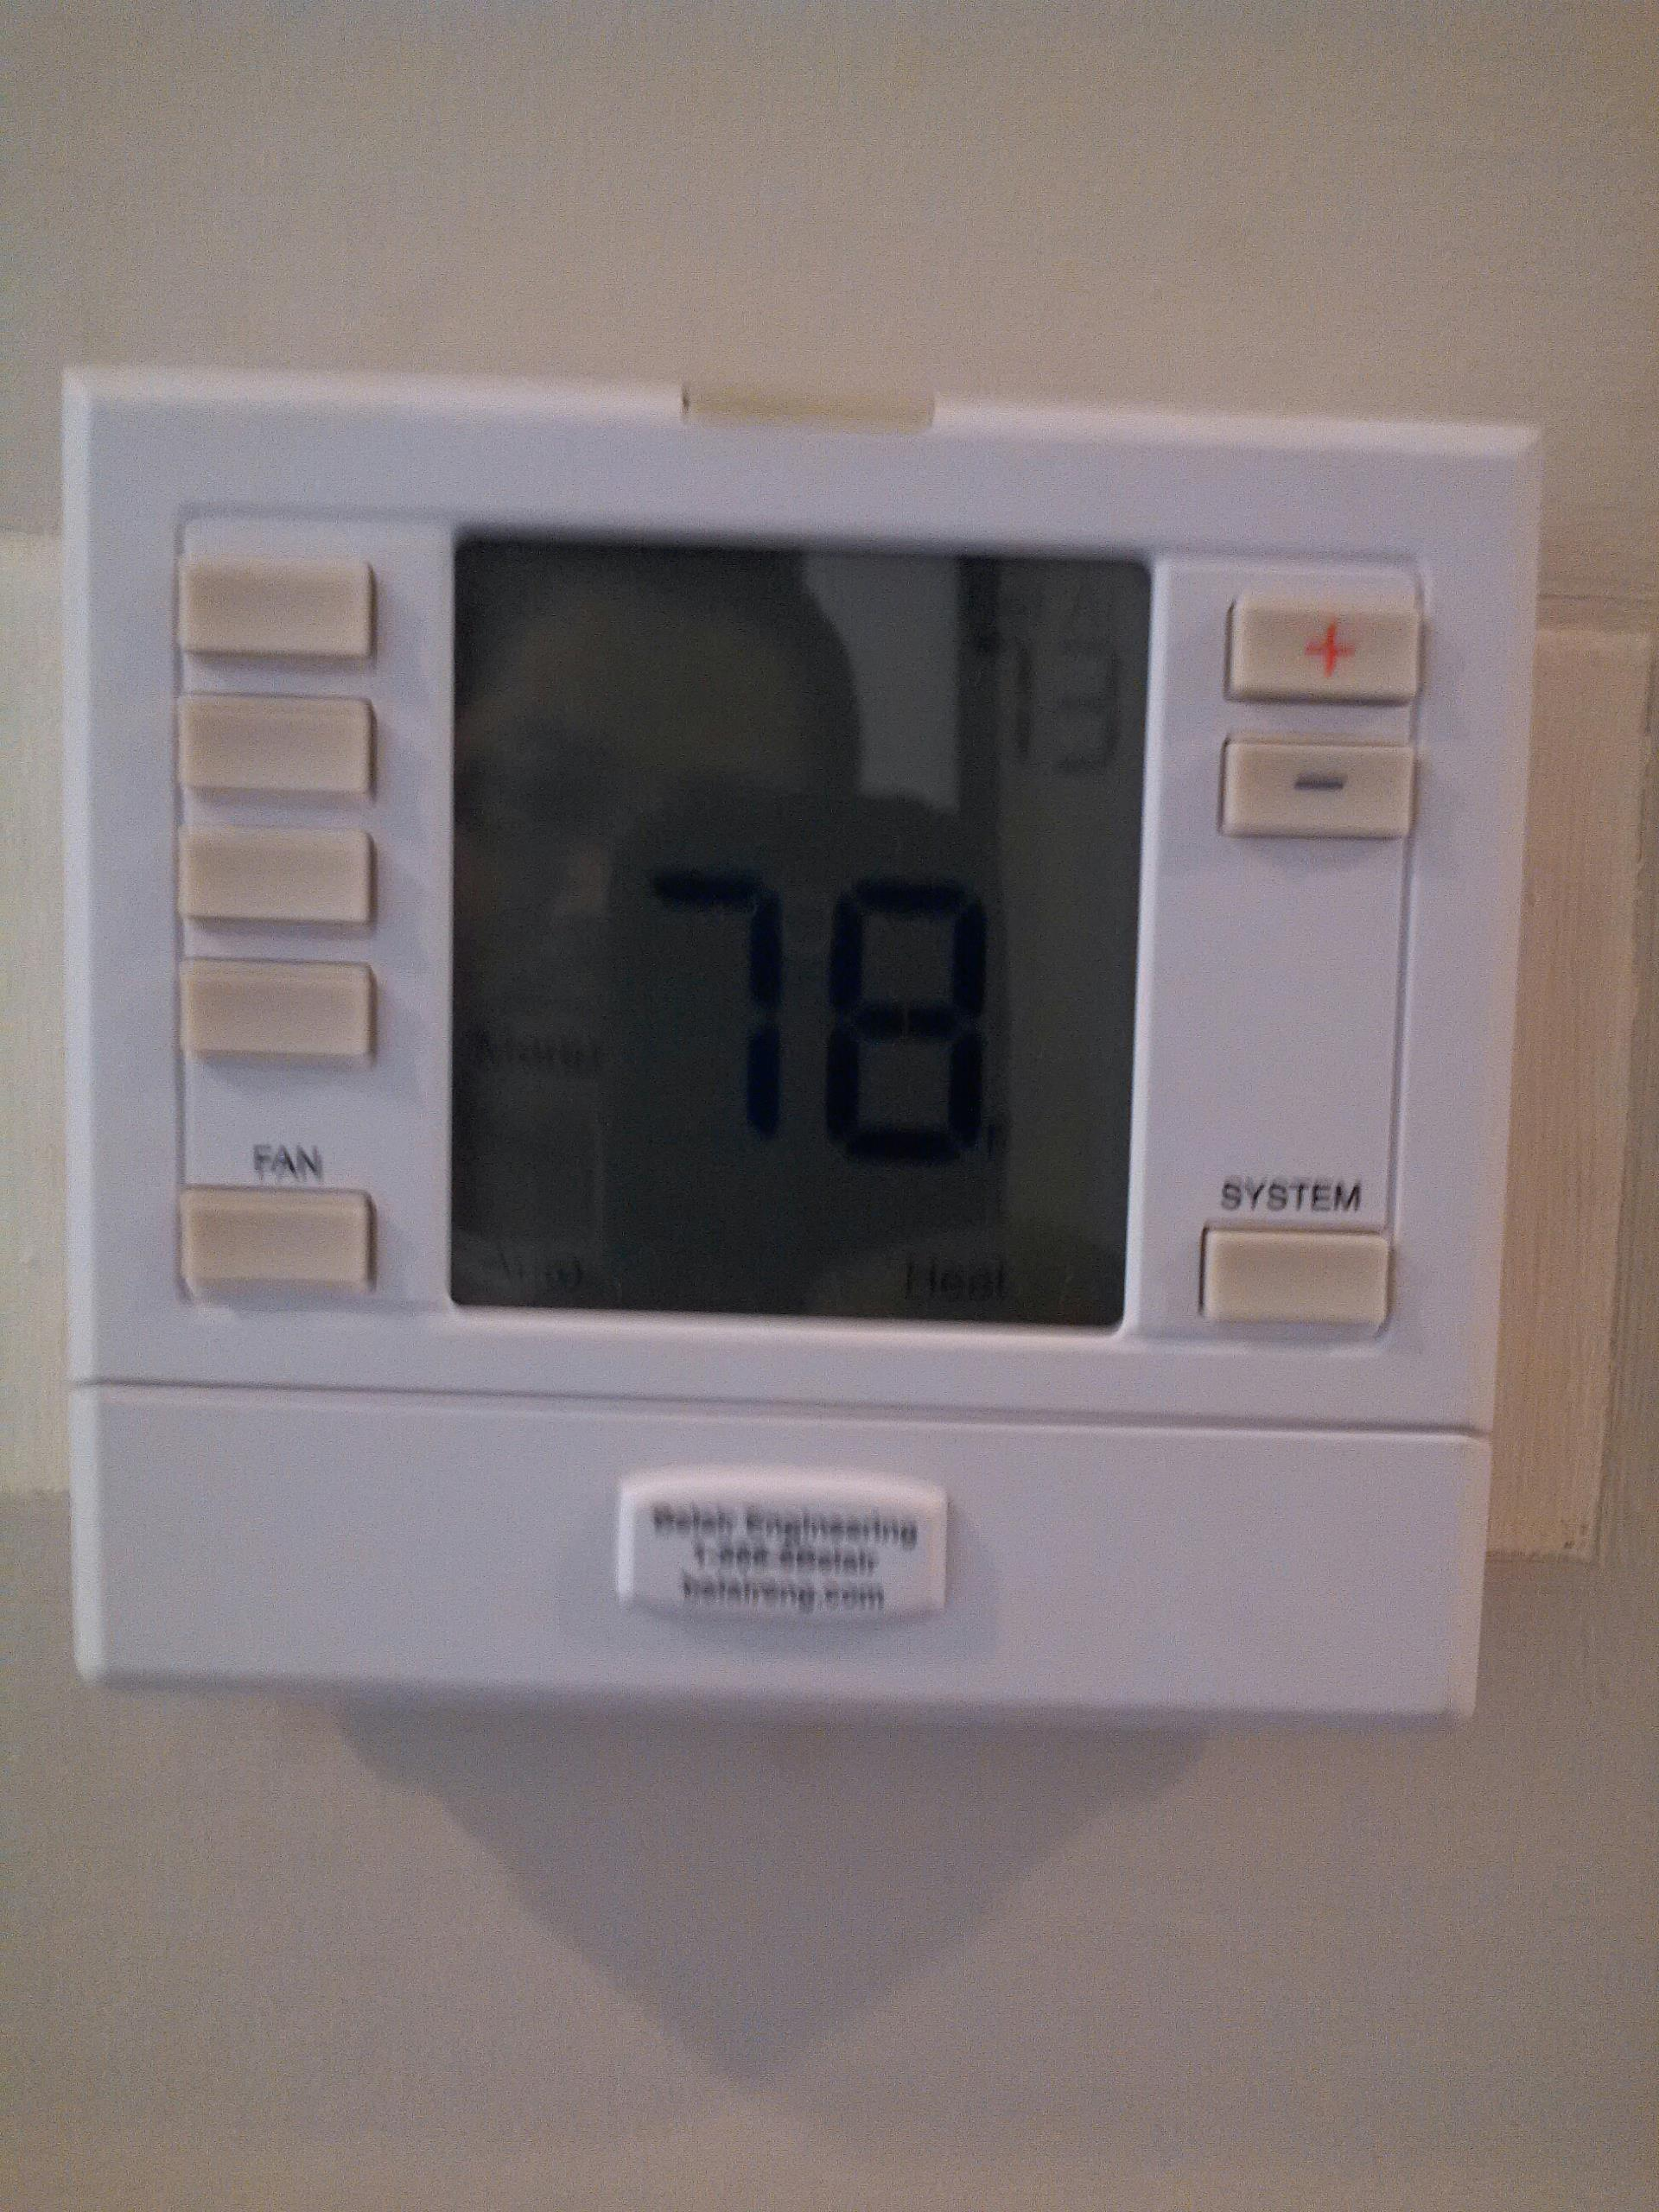 Crofton, MD - Crofton Maryland Carrier furnace heating system replacement installation service call.